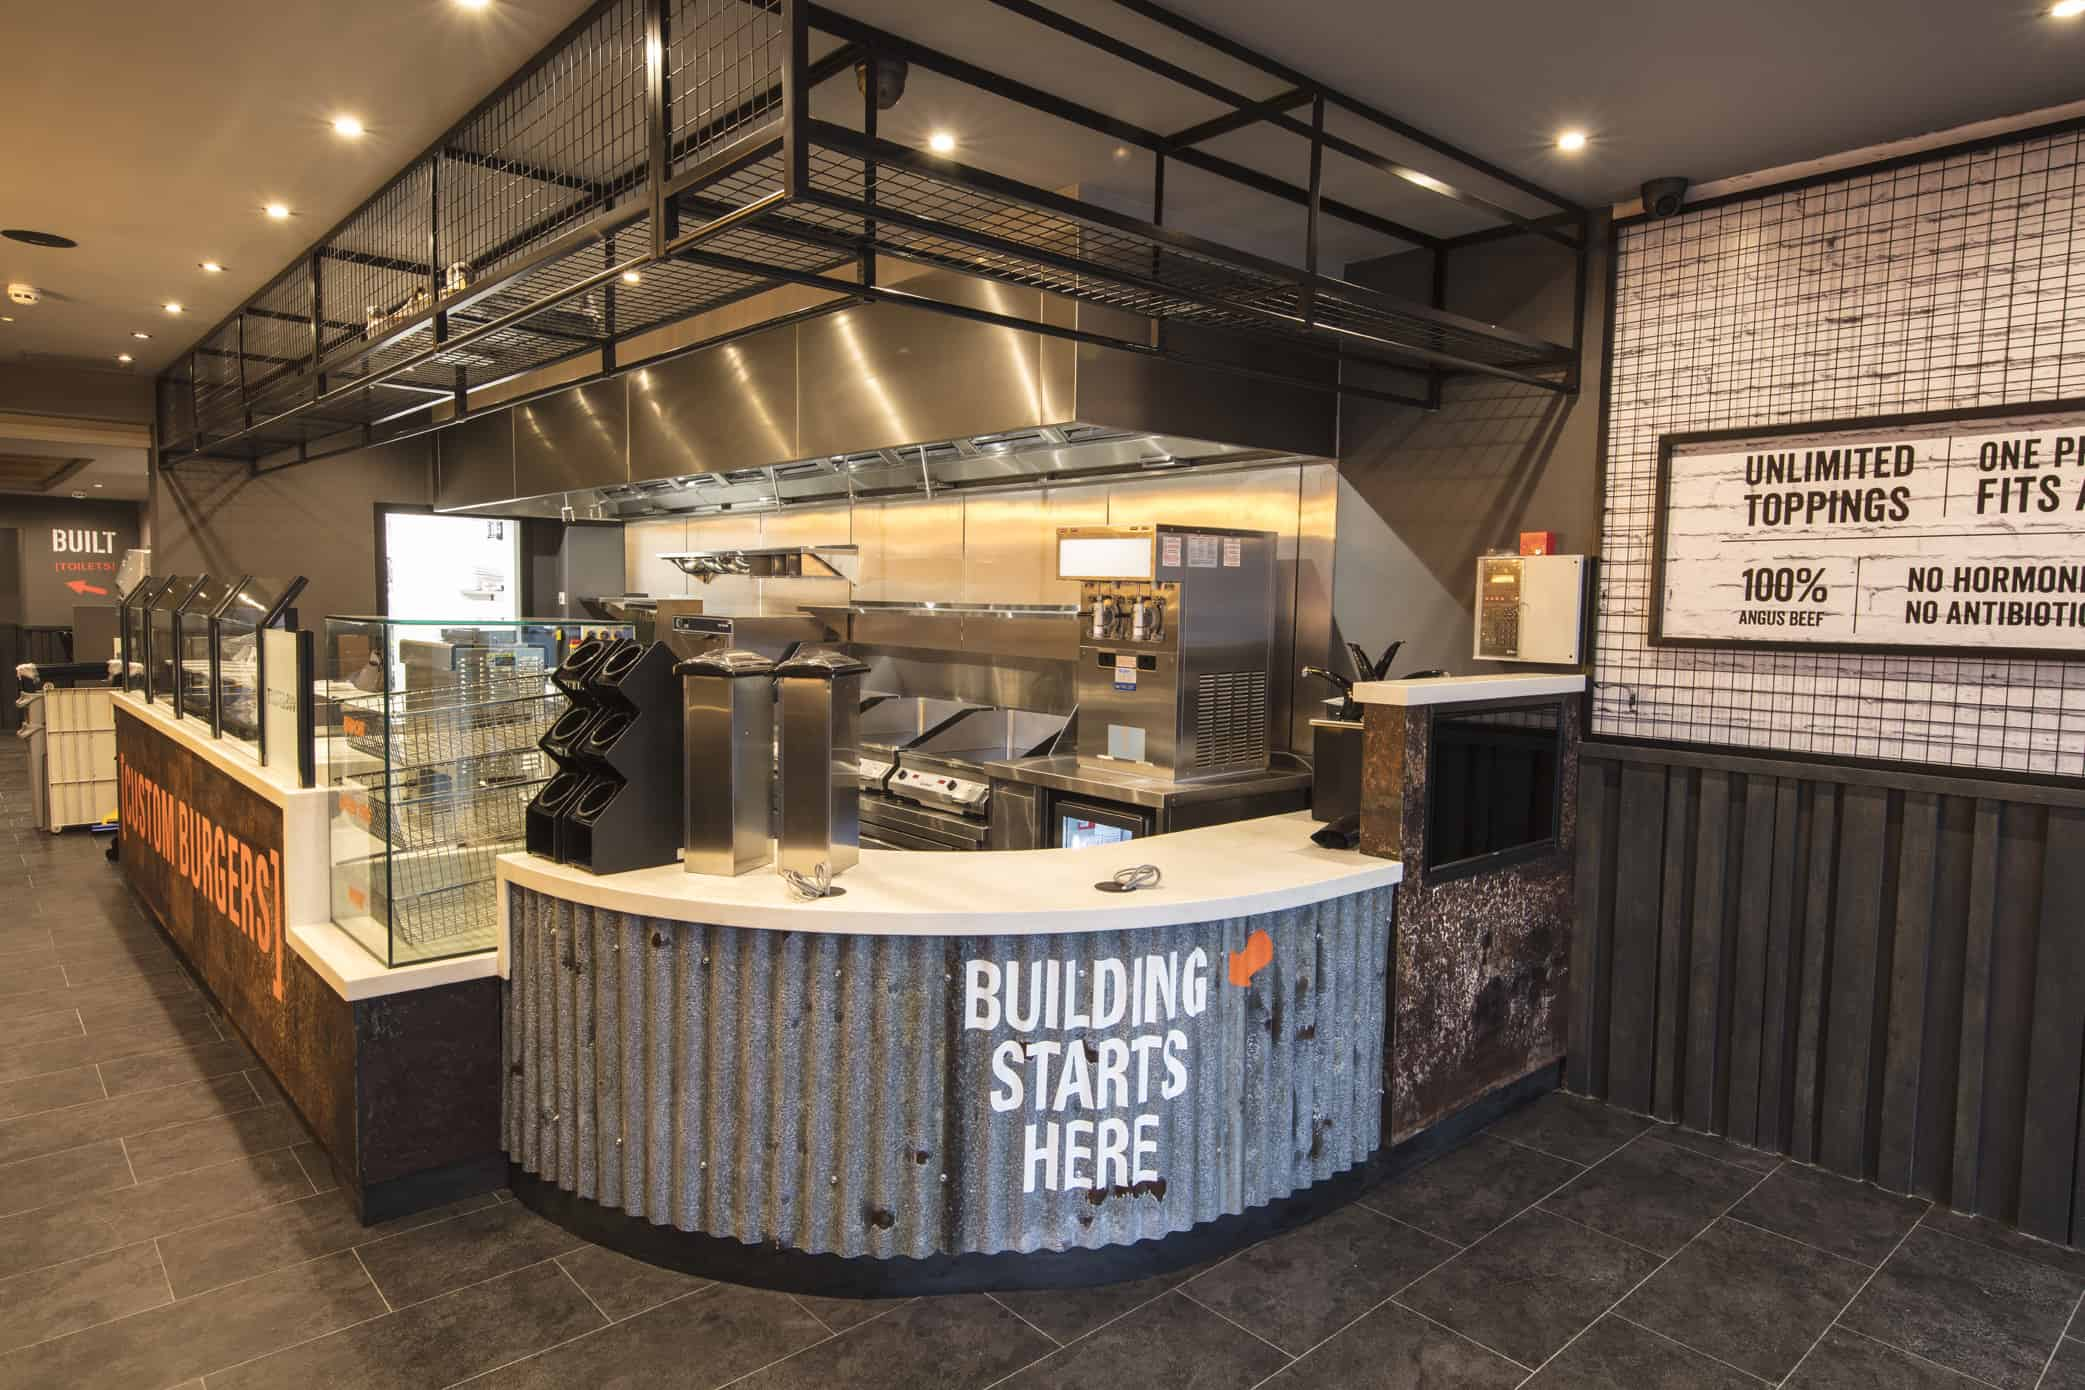 Built Custom Burgers launches first UK Site